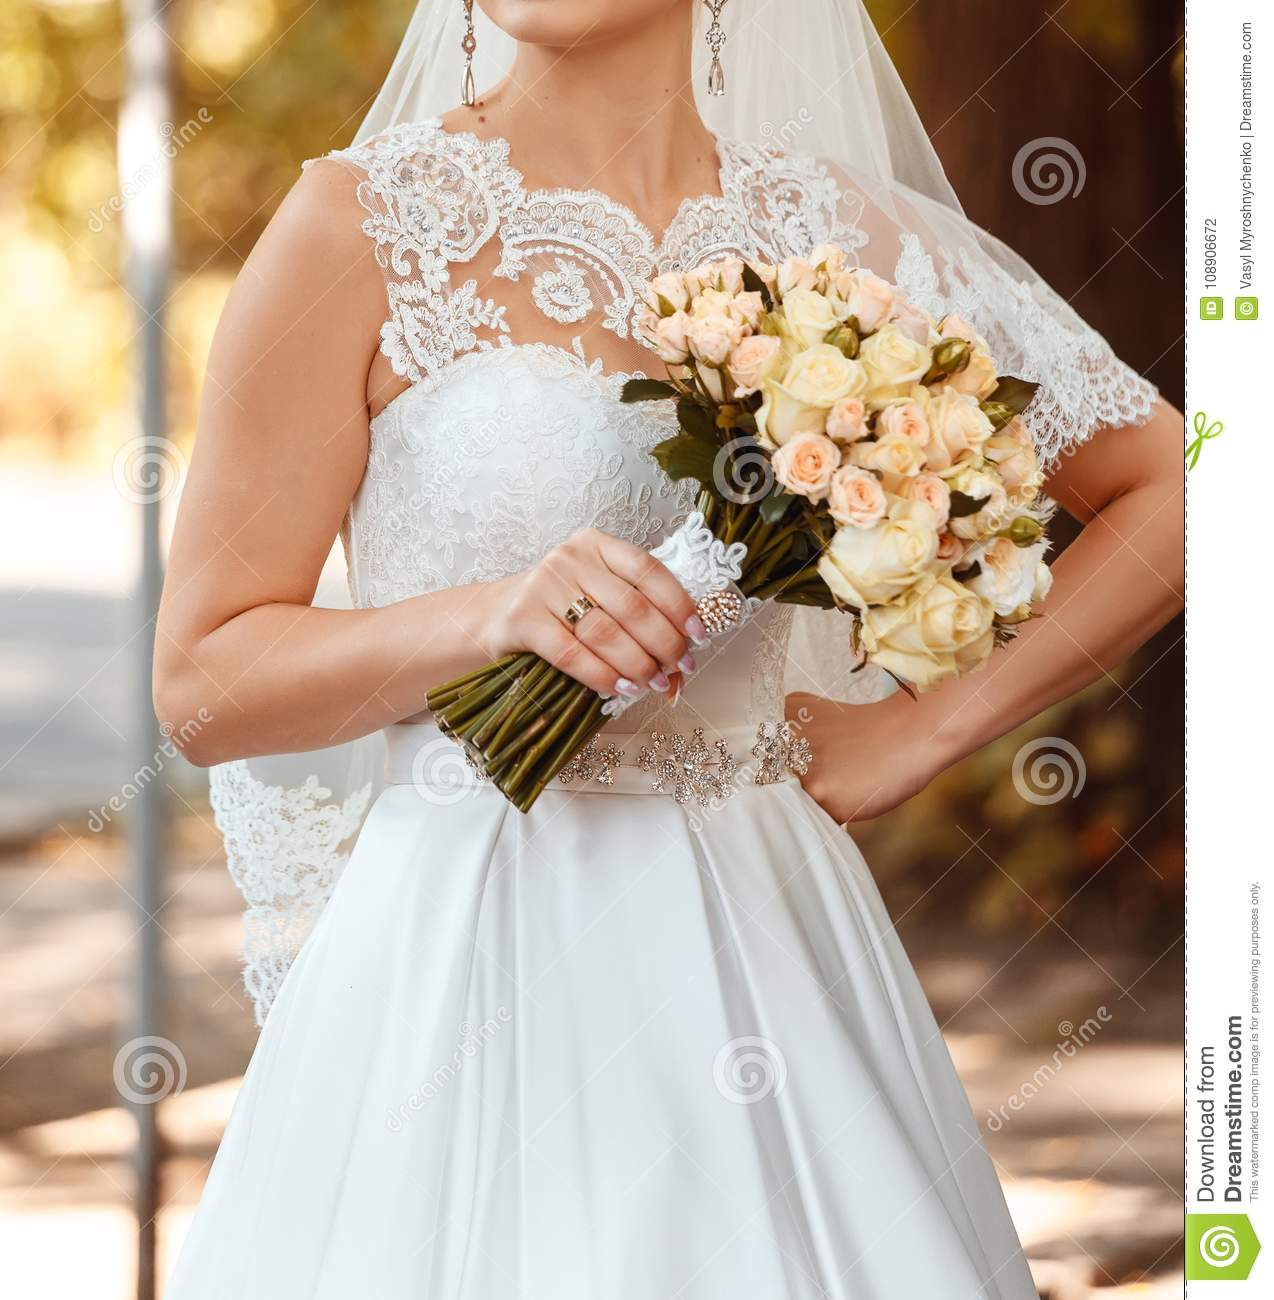 Modern Yellow Roses On Her Gown Elaboration - Wedding and flowers ...